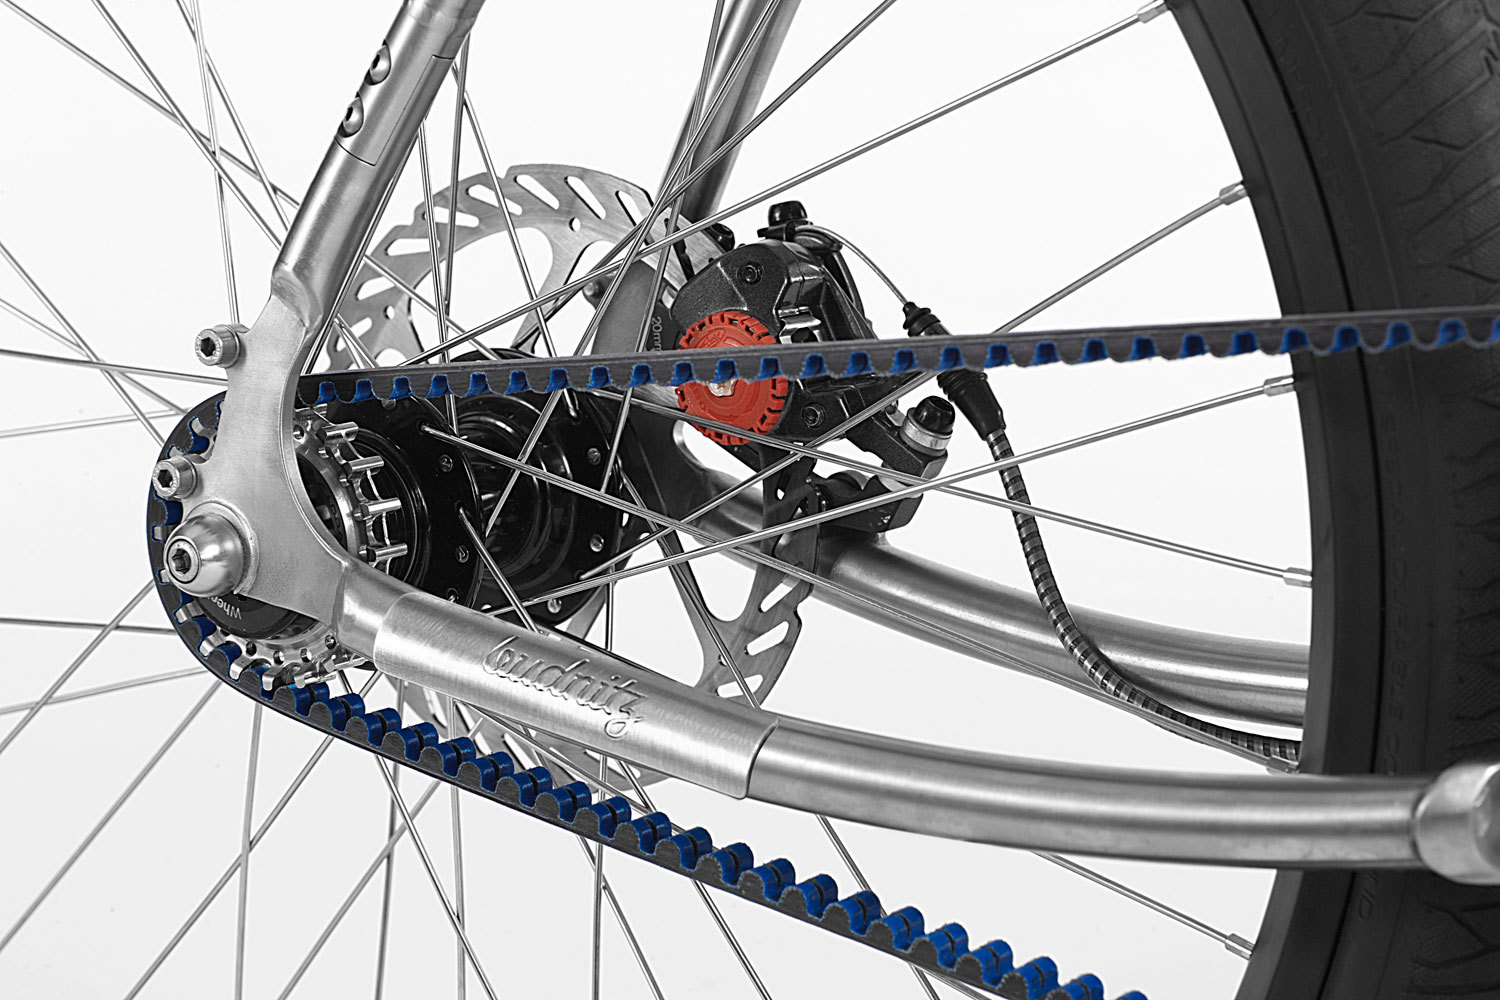 Hubless Bicycle Wheel moreover Trek Soho Hybrid Bike likewise Belt Driven Bicycle moreover Plastic Vent Covers also Fifth Wheel Tripod Stabilizer Jack. on belt driven bicycle